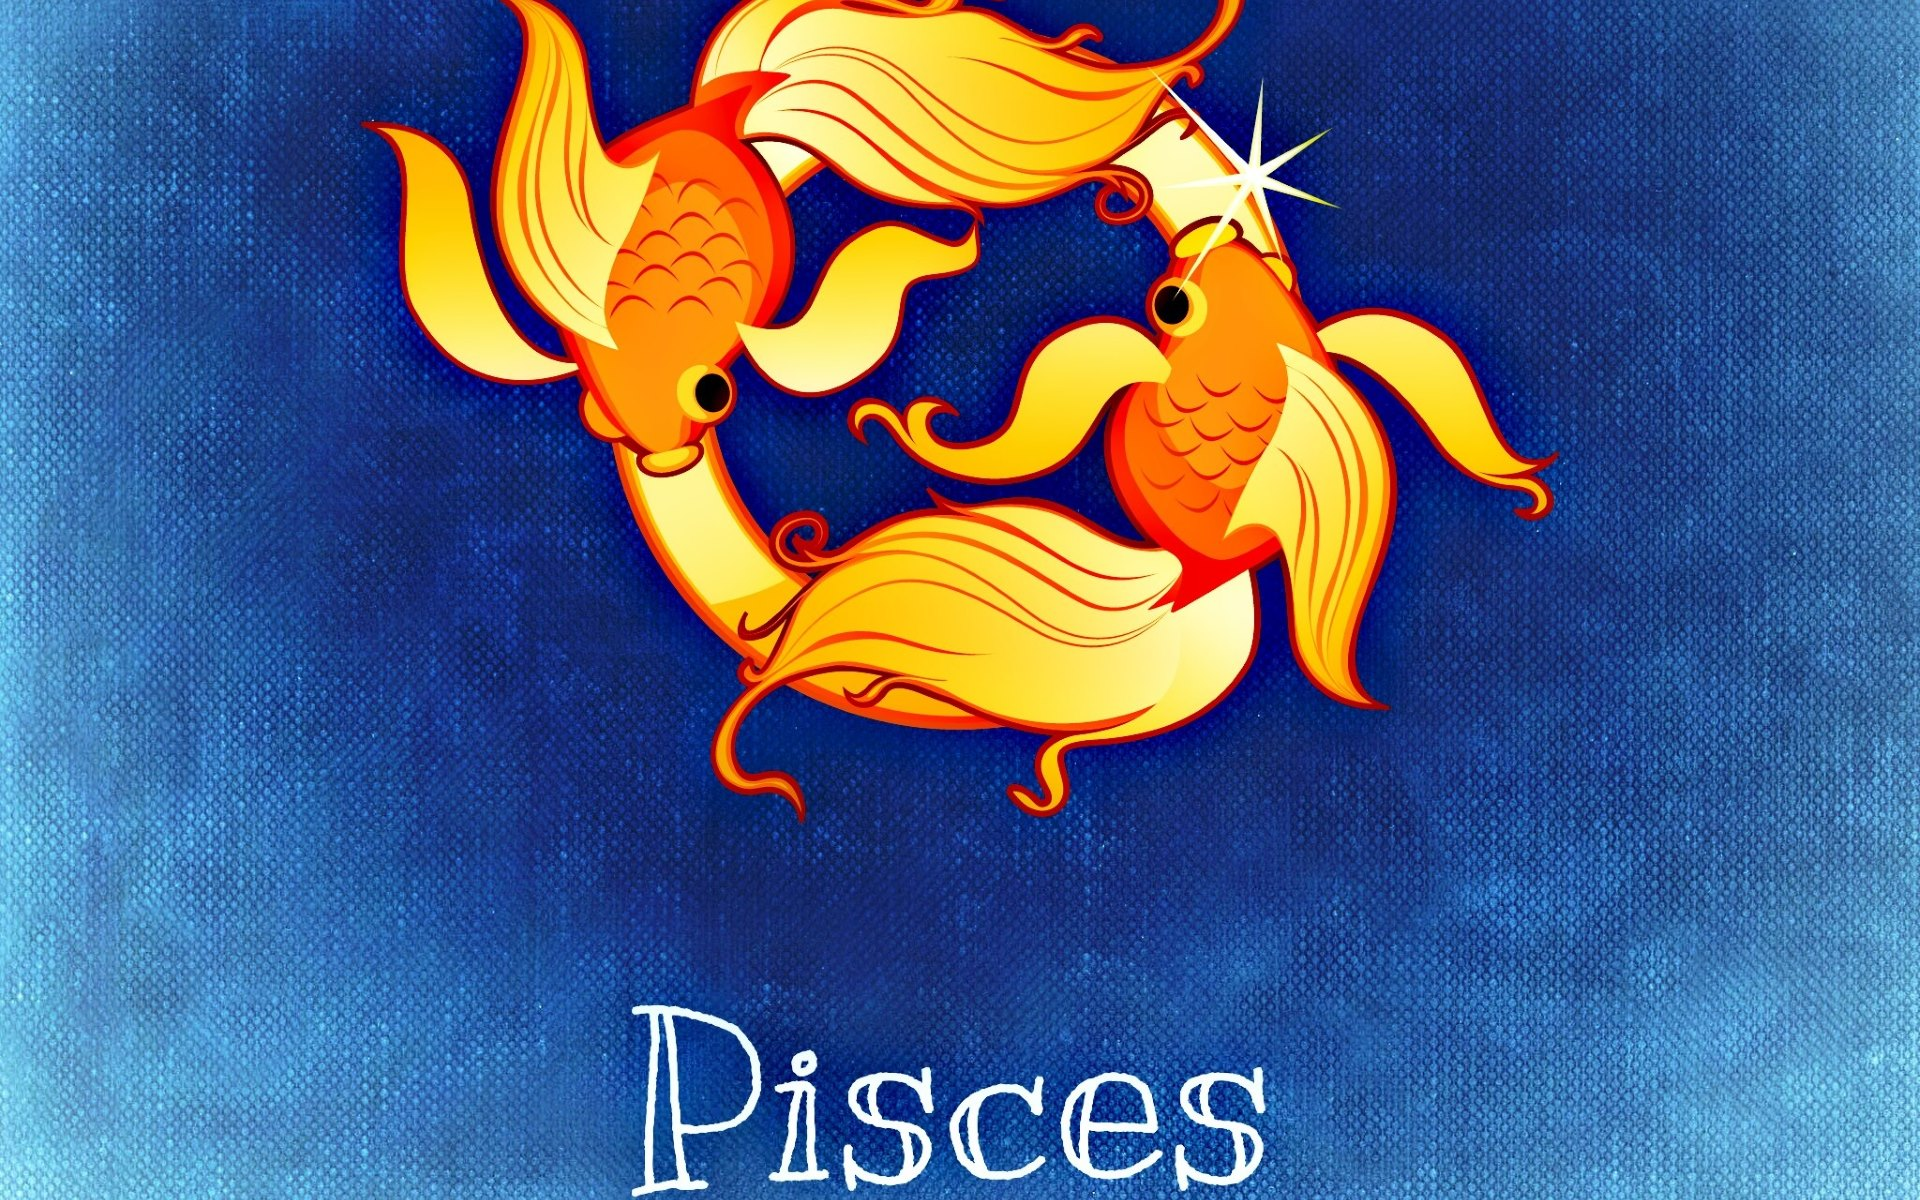 Horoscope Pisces Hd Wallpaper Background Image 1920x1200 Id